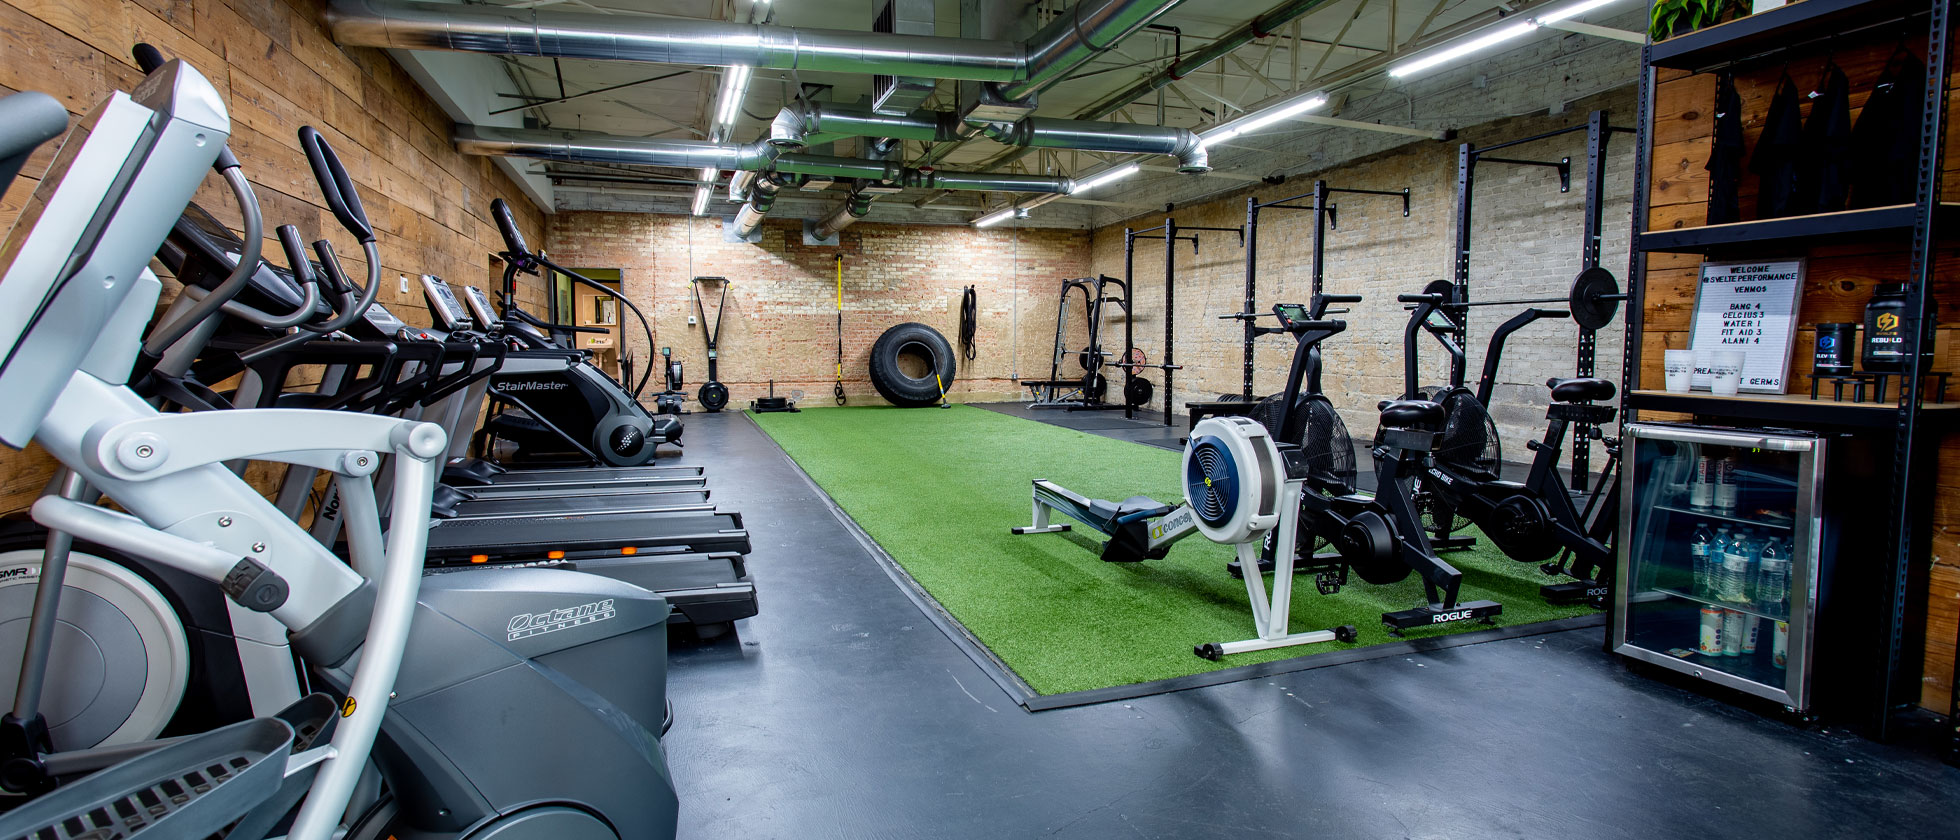 Why Svelte Performance Is Ranked One of the Best Gyms In Deep Ellum, Texas